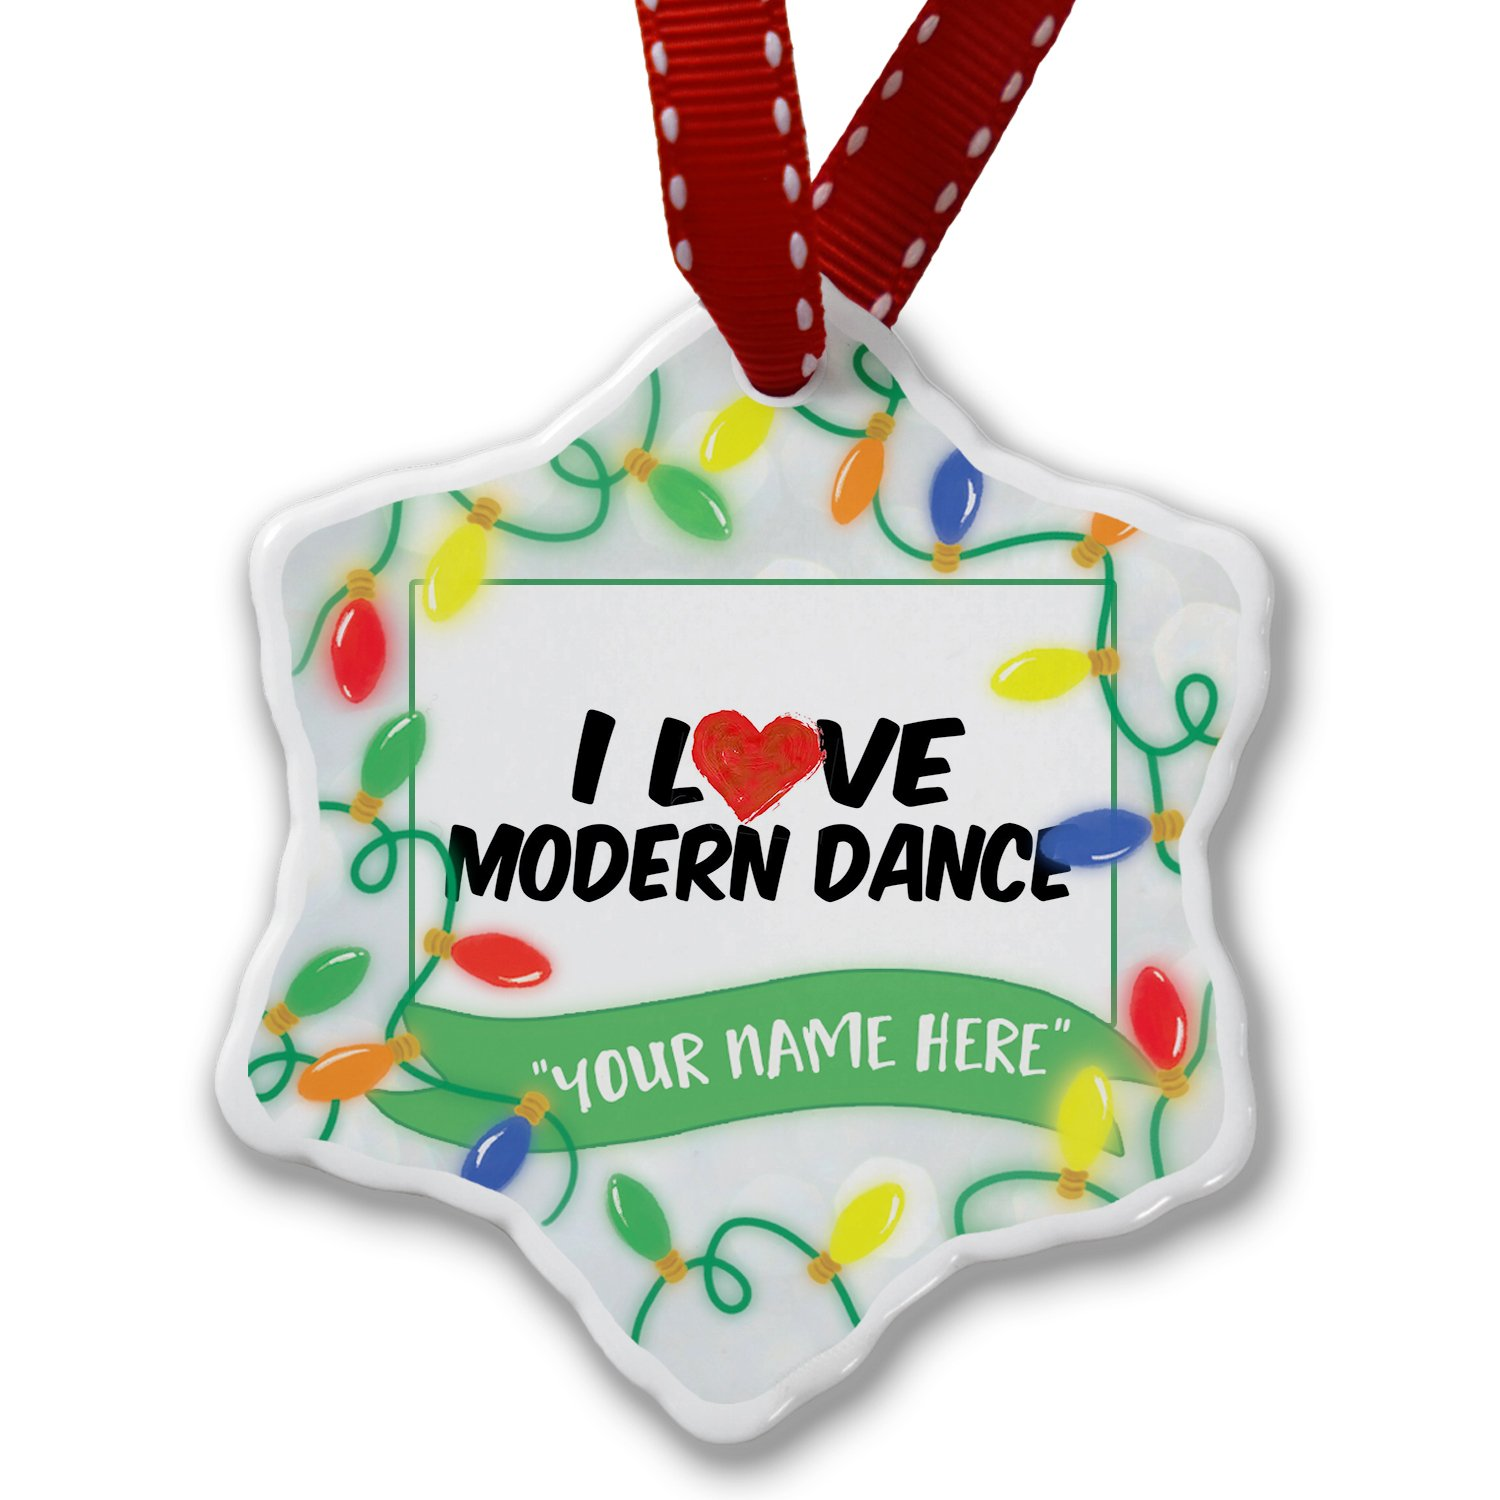 Personalized Name Christmas Ornament, I Love Modern Dance NEONBLOND